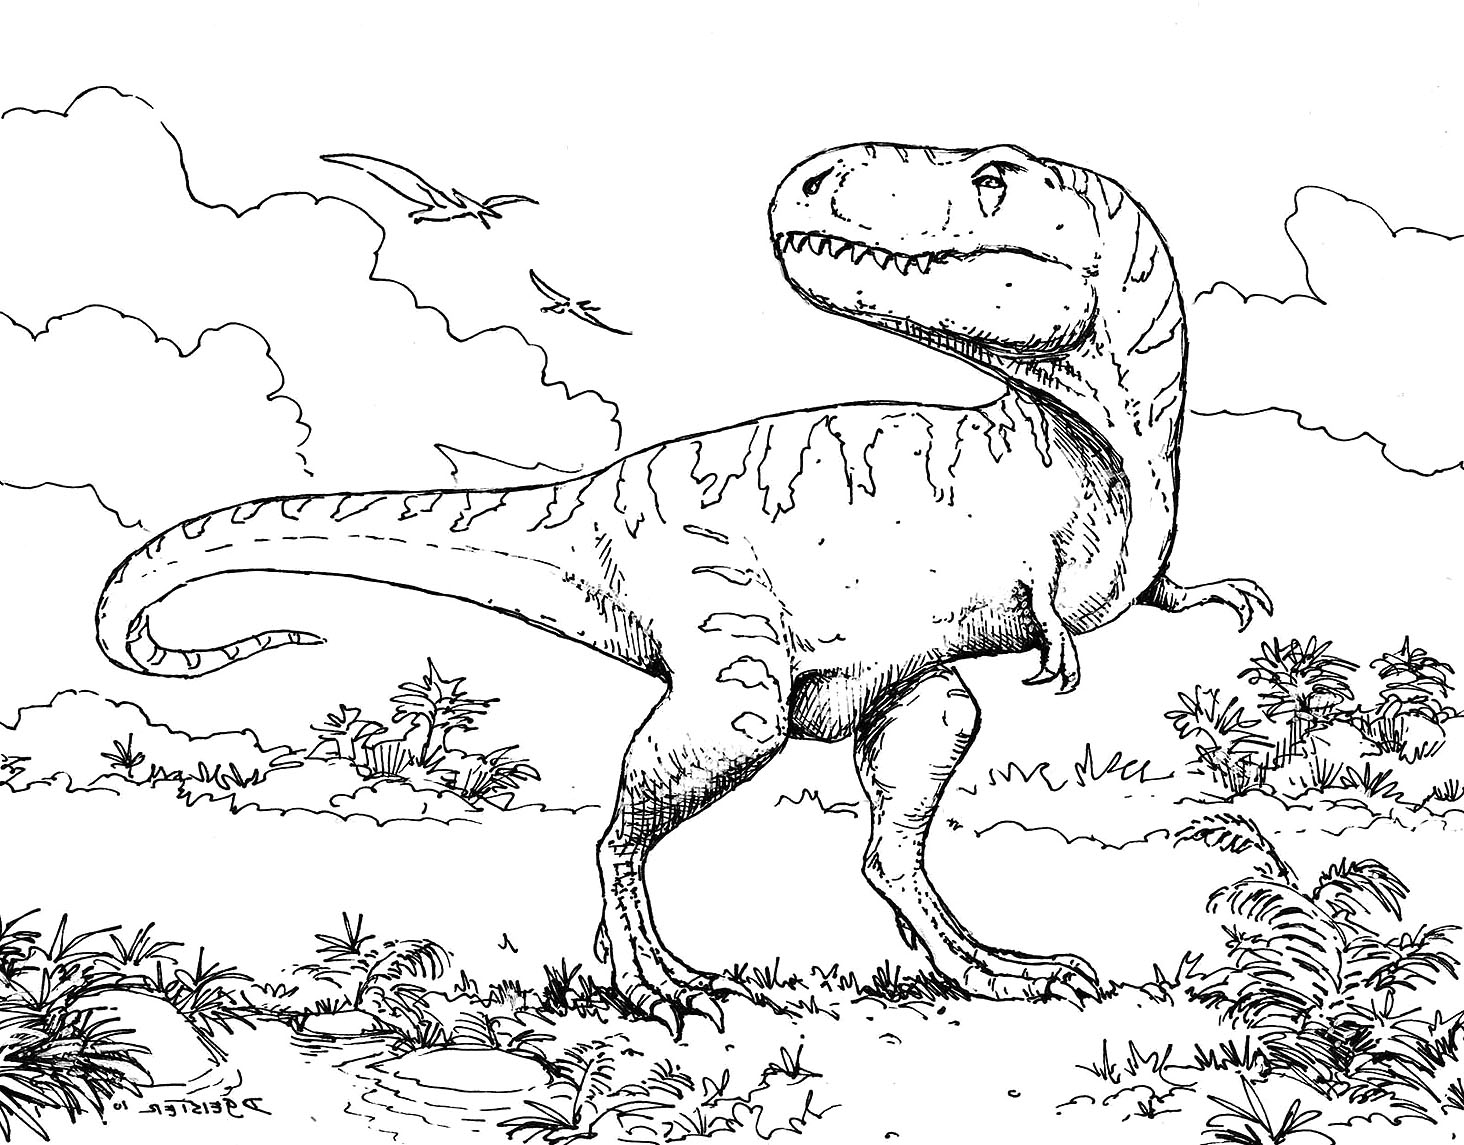 Revisited Colouring Dinosaurs Dino Unknown Collection Of Dinosaur Clipart Coloring Page Triceratop Pencil and In Color Gallery